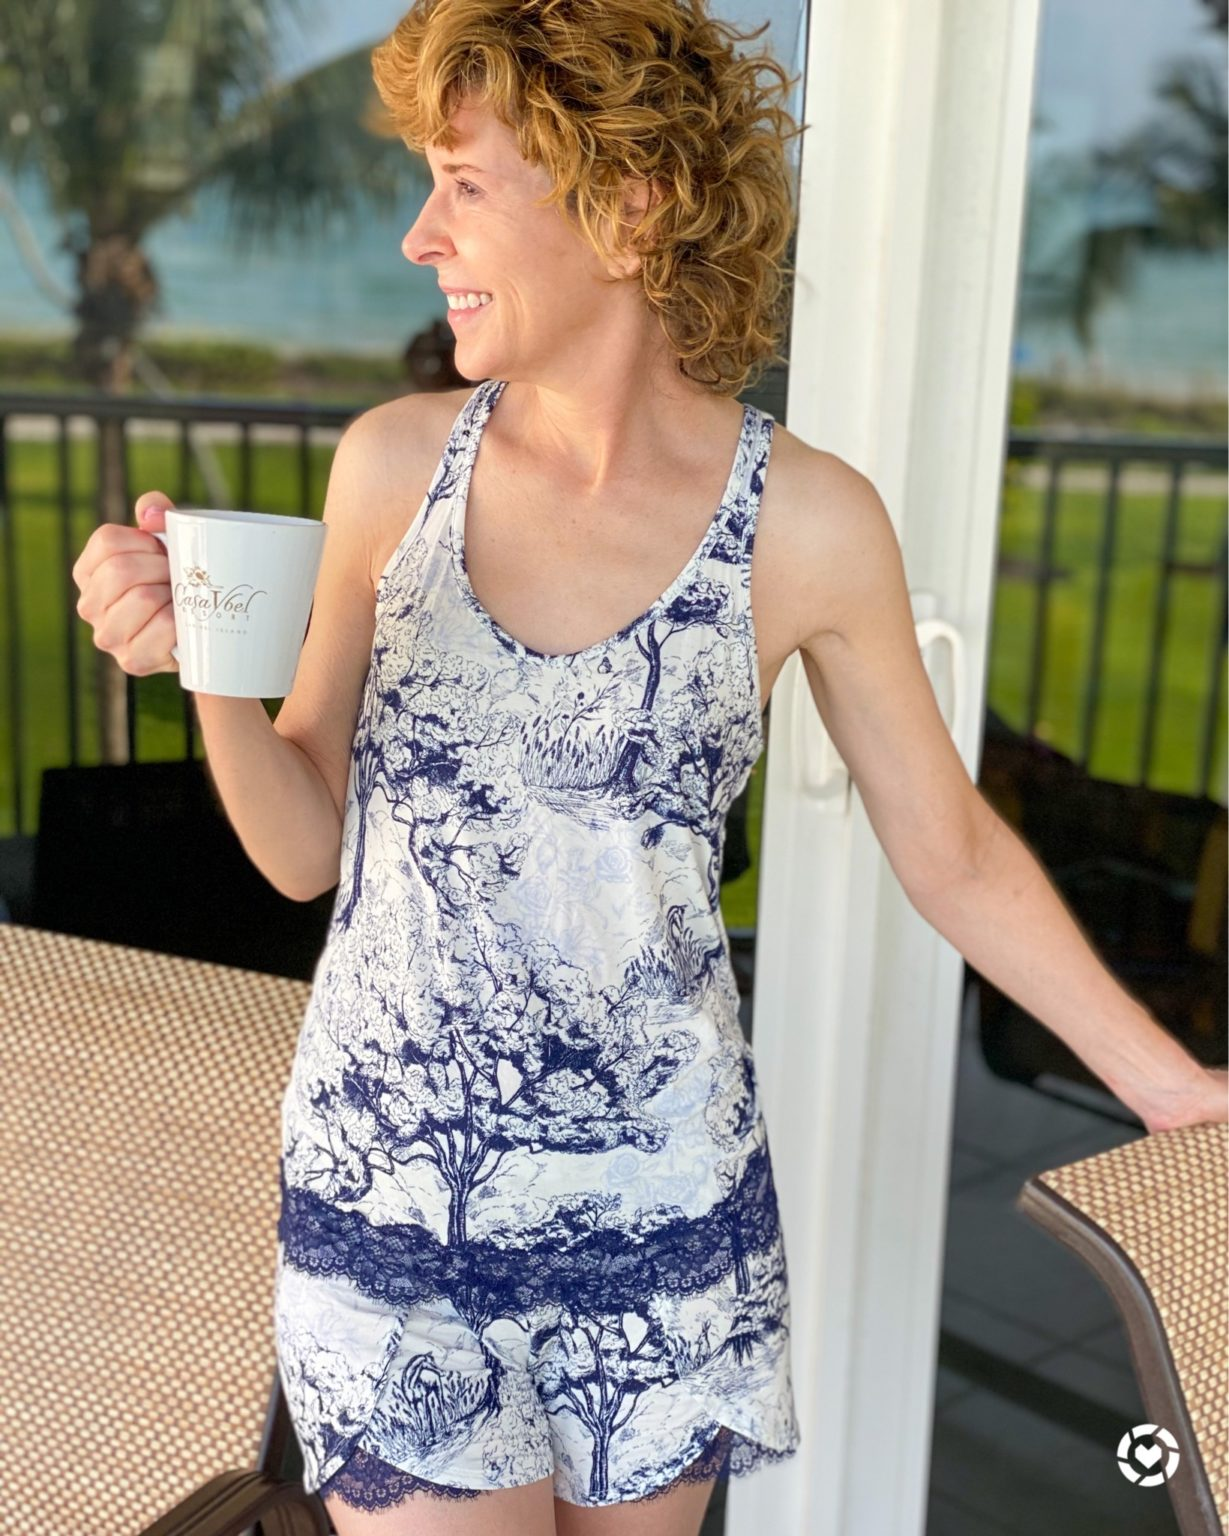 woman in pajamas standing on patio